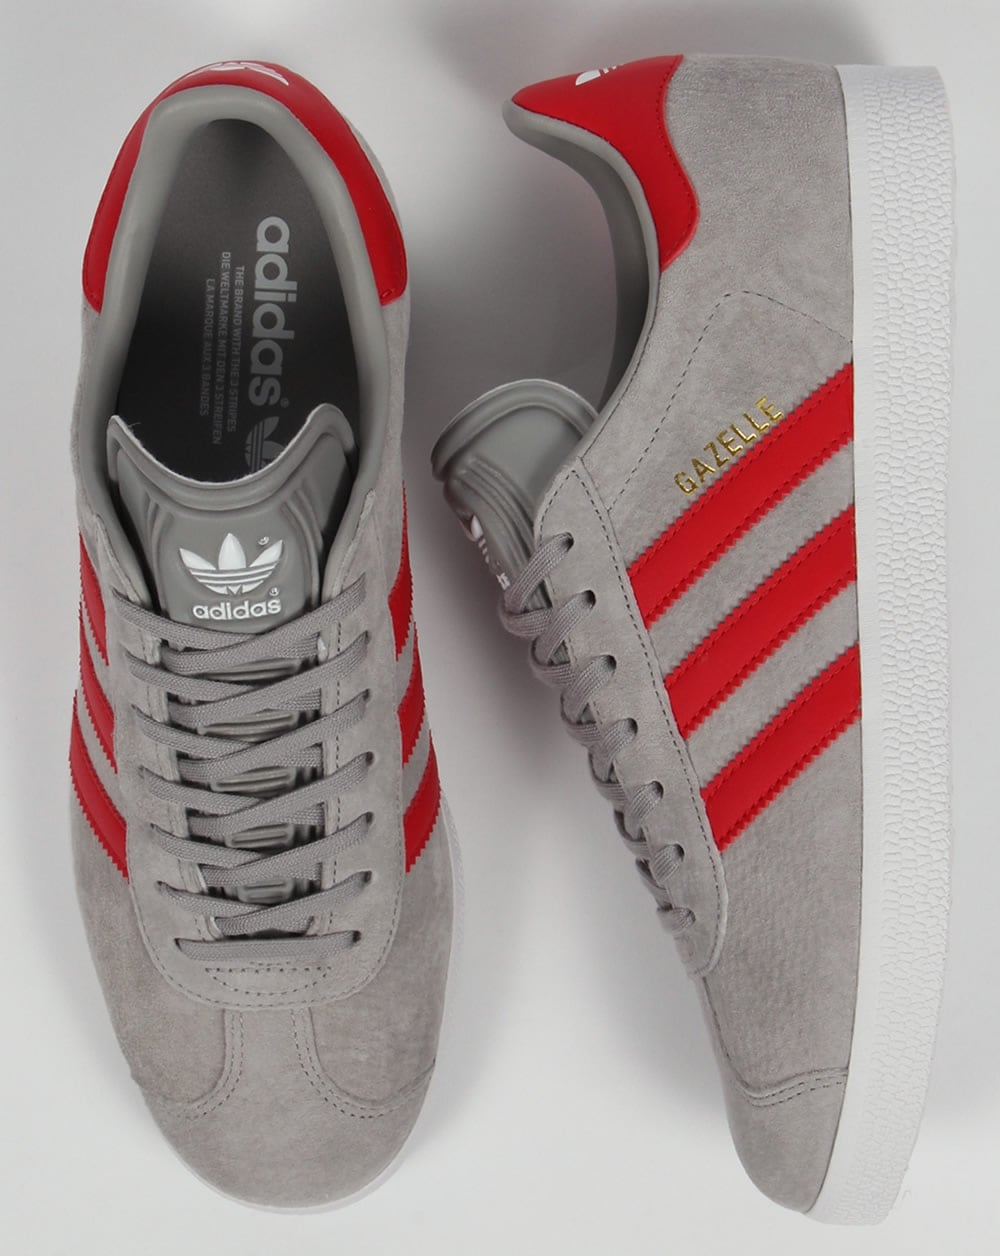 adidas superstar mens red adidas gazelle grey